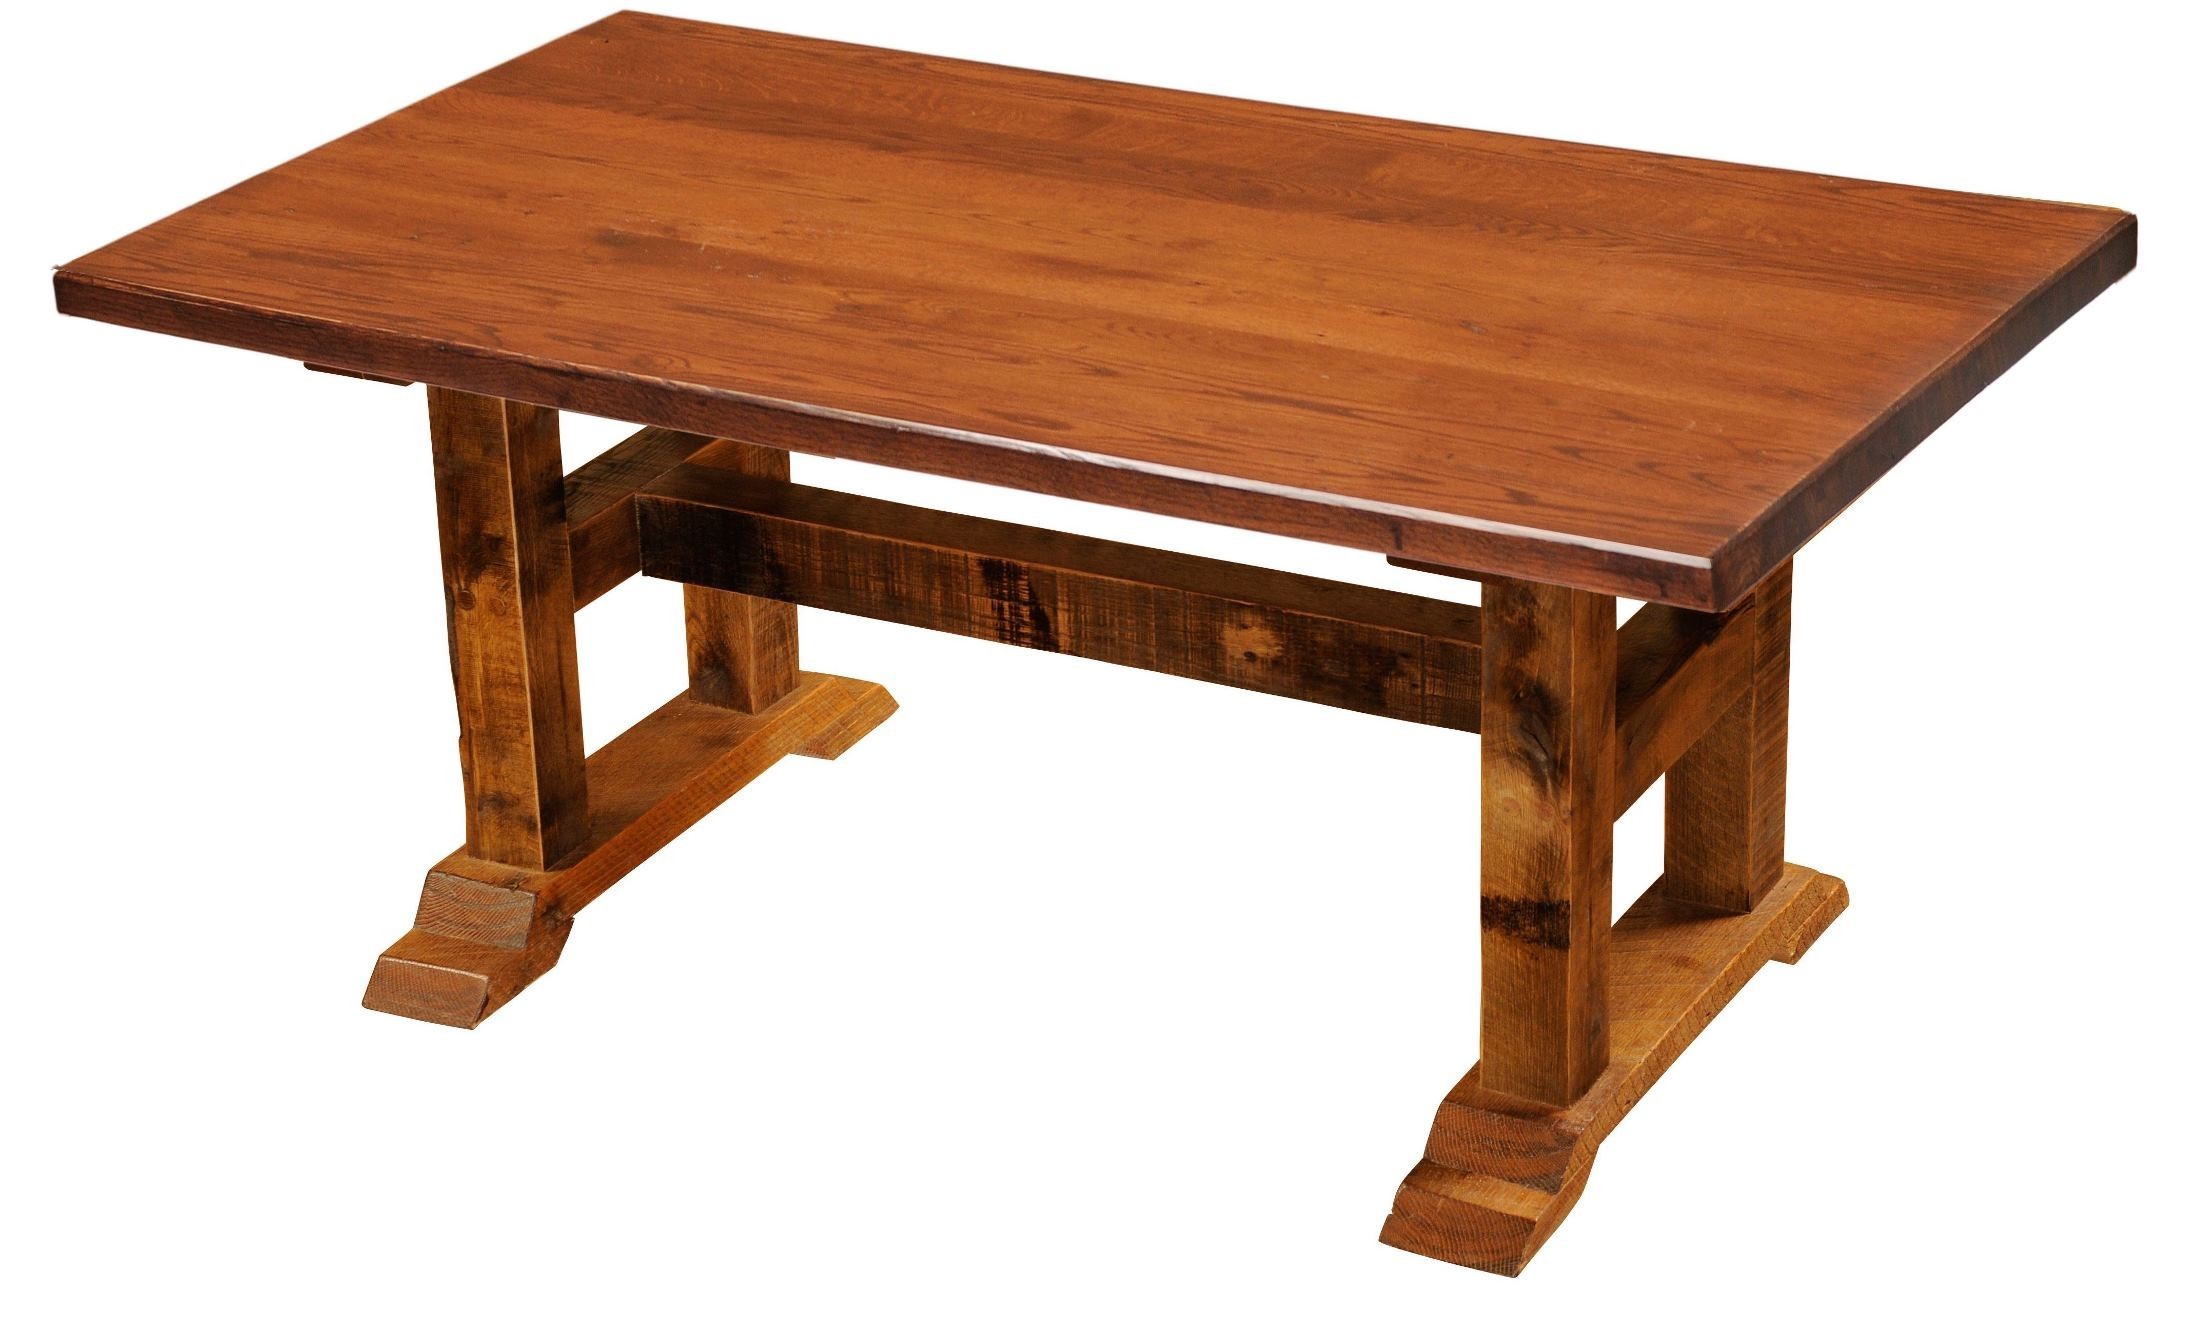 barnwood timbers 60 antique oak top rectangular dining table from